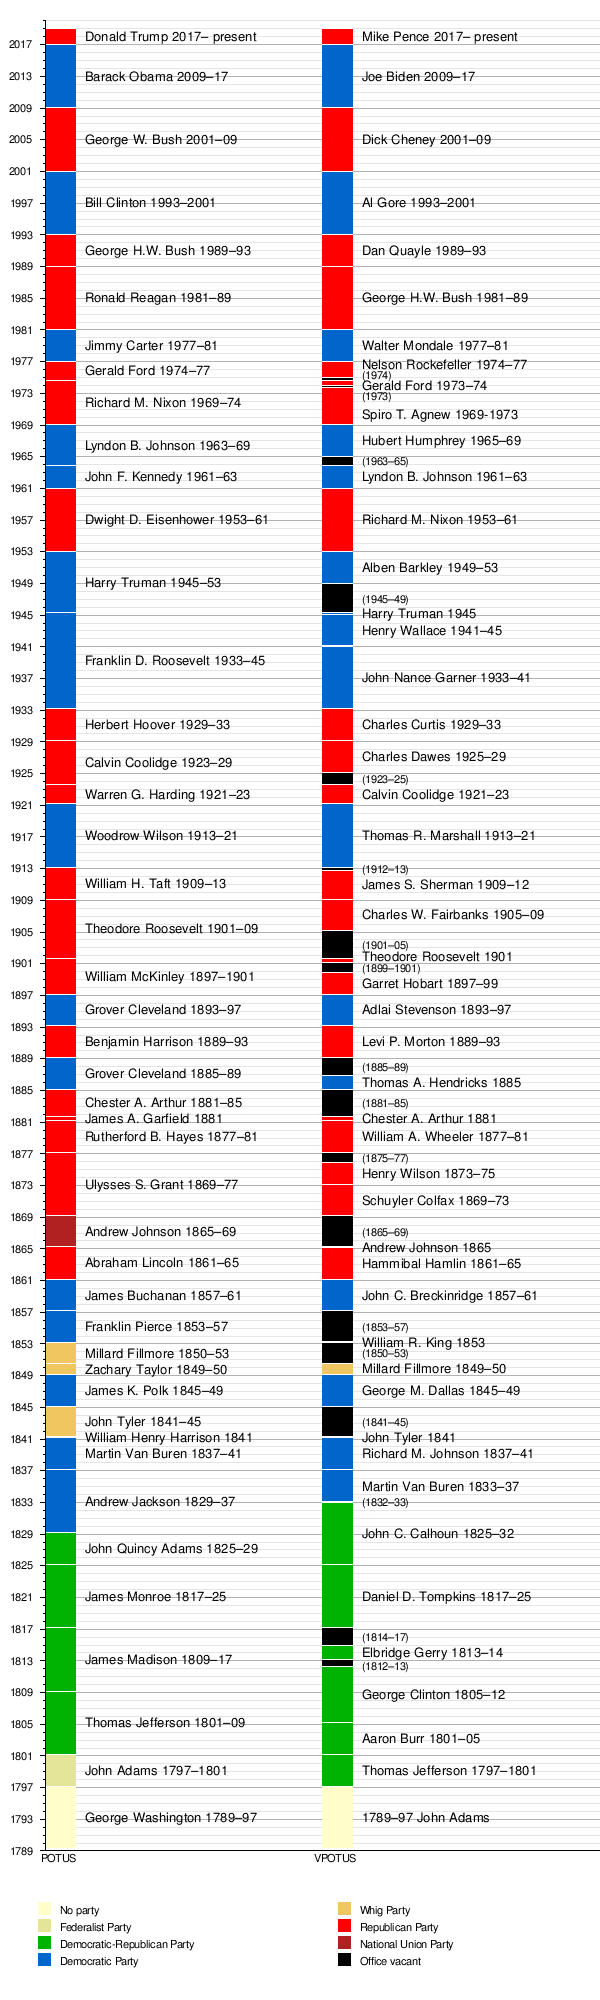 template timeline us presidents and vice presidents wikipedia